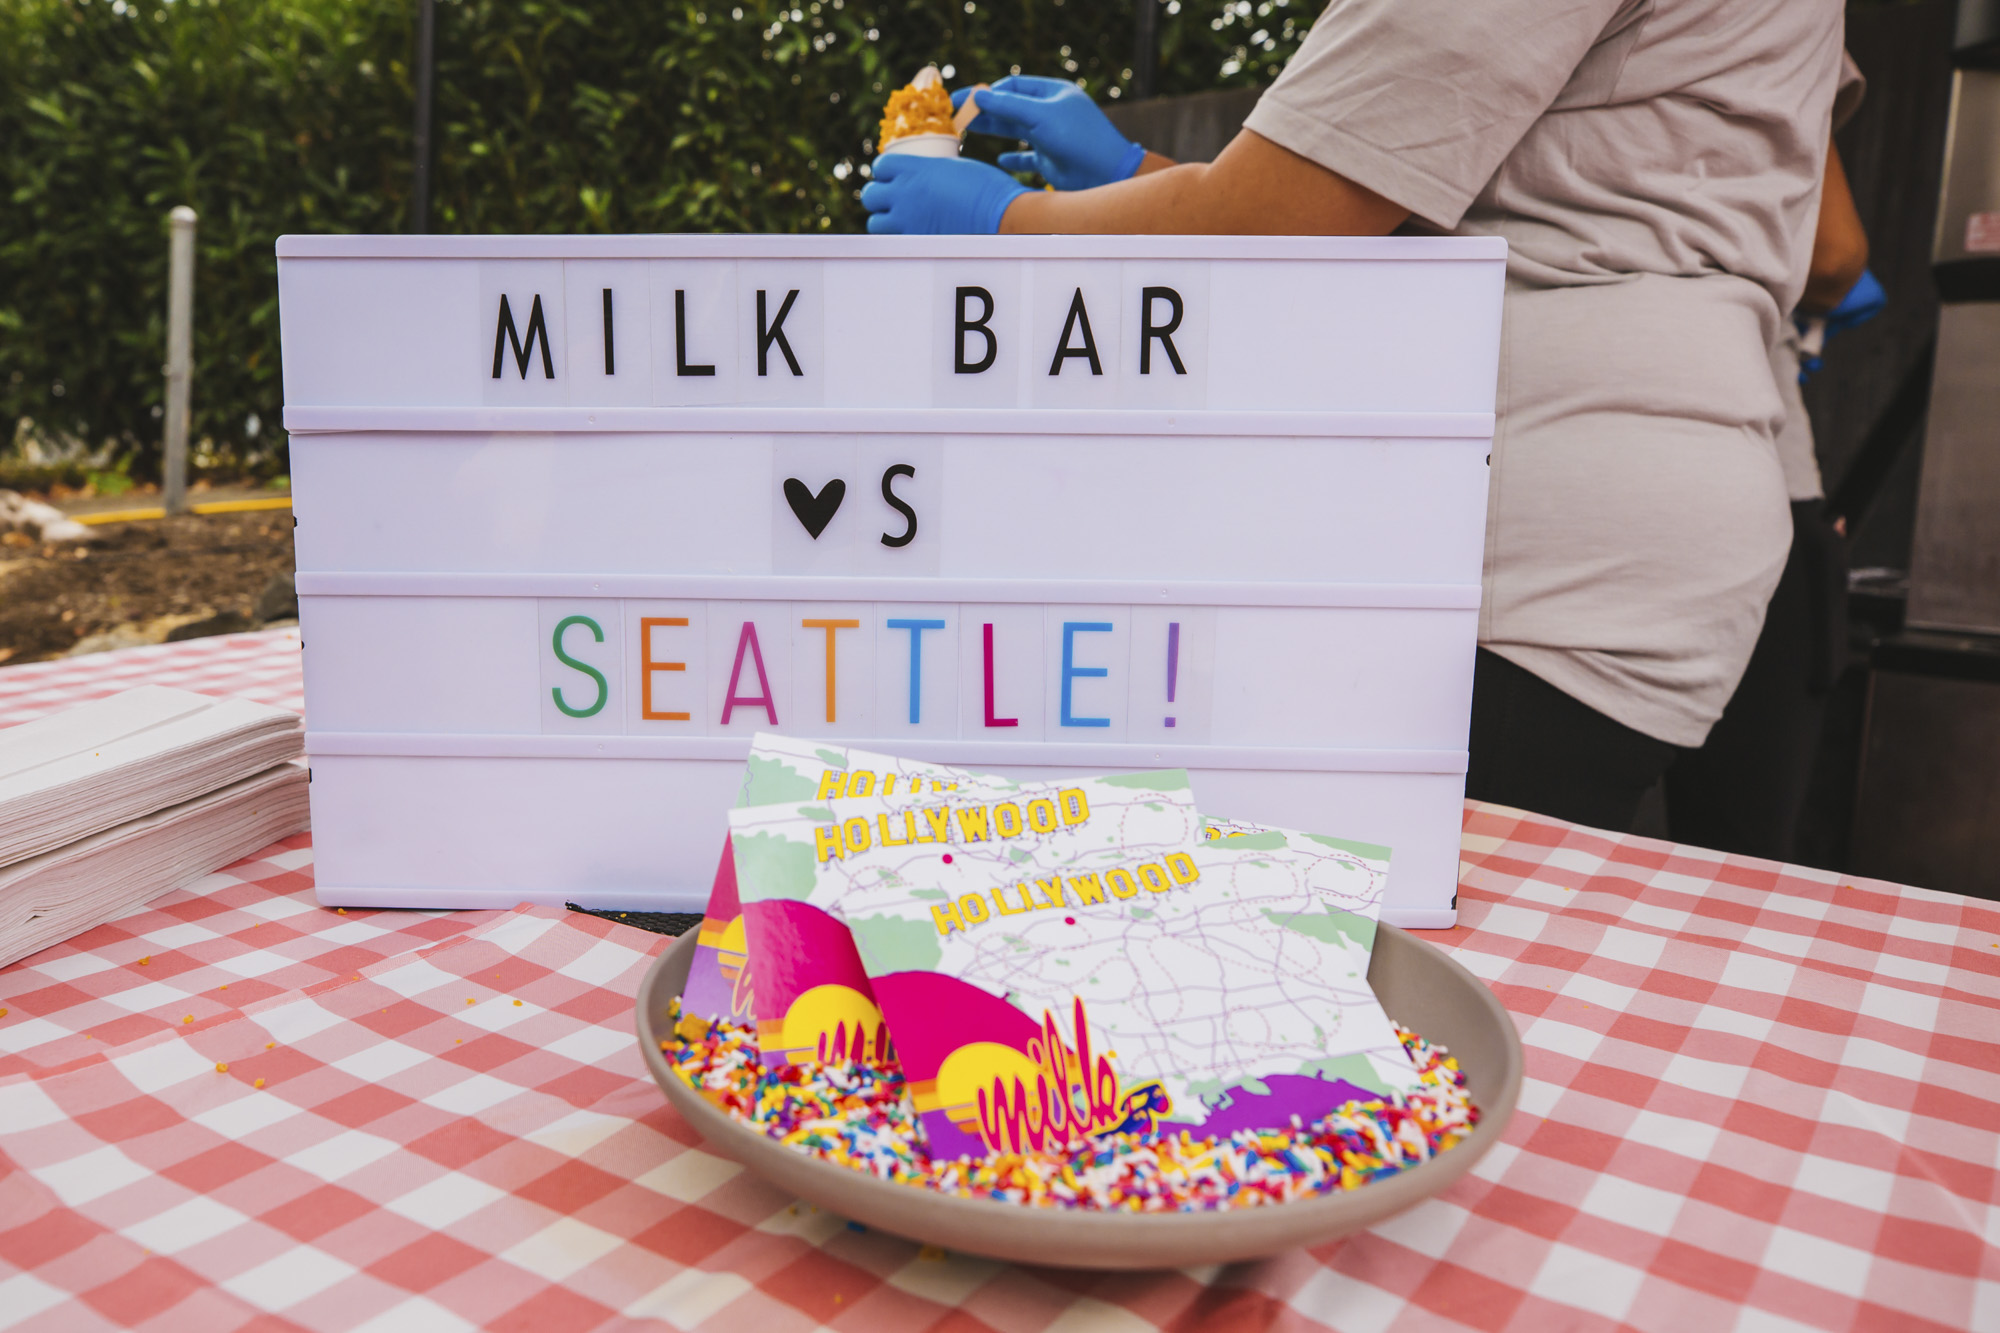 Talk about bittersweet! CEO Christina Tosi and her beloved Milk Bar popped up at Canlis over the weekend, to crowds of fans hoping for a taste of famous items like Crack Pie, or Cereal Milk. A hot destination on the East Coast and in Vegas, Seattleites have been preying for a local brick and mortar for ages. Maybe this pop-up is testing the waters? If so - let's consider this test ACED. (Image: Sunita Martini / Seattle Refined){ }{ }